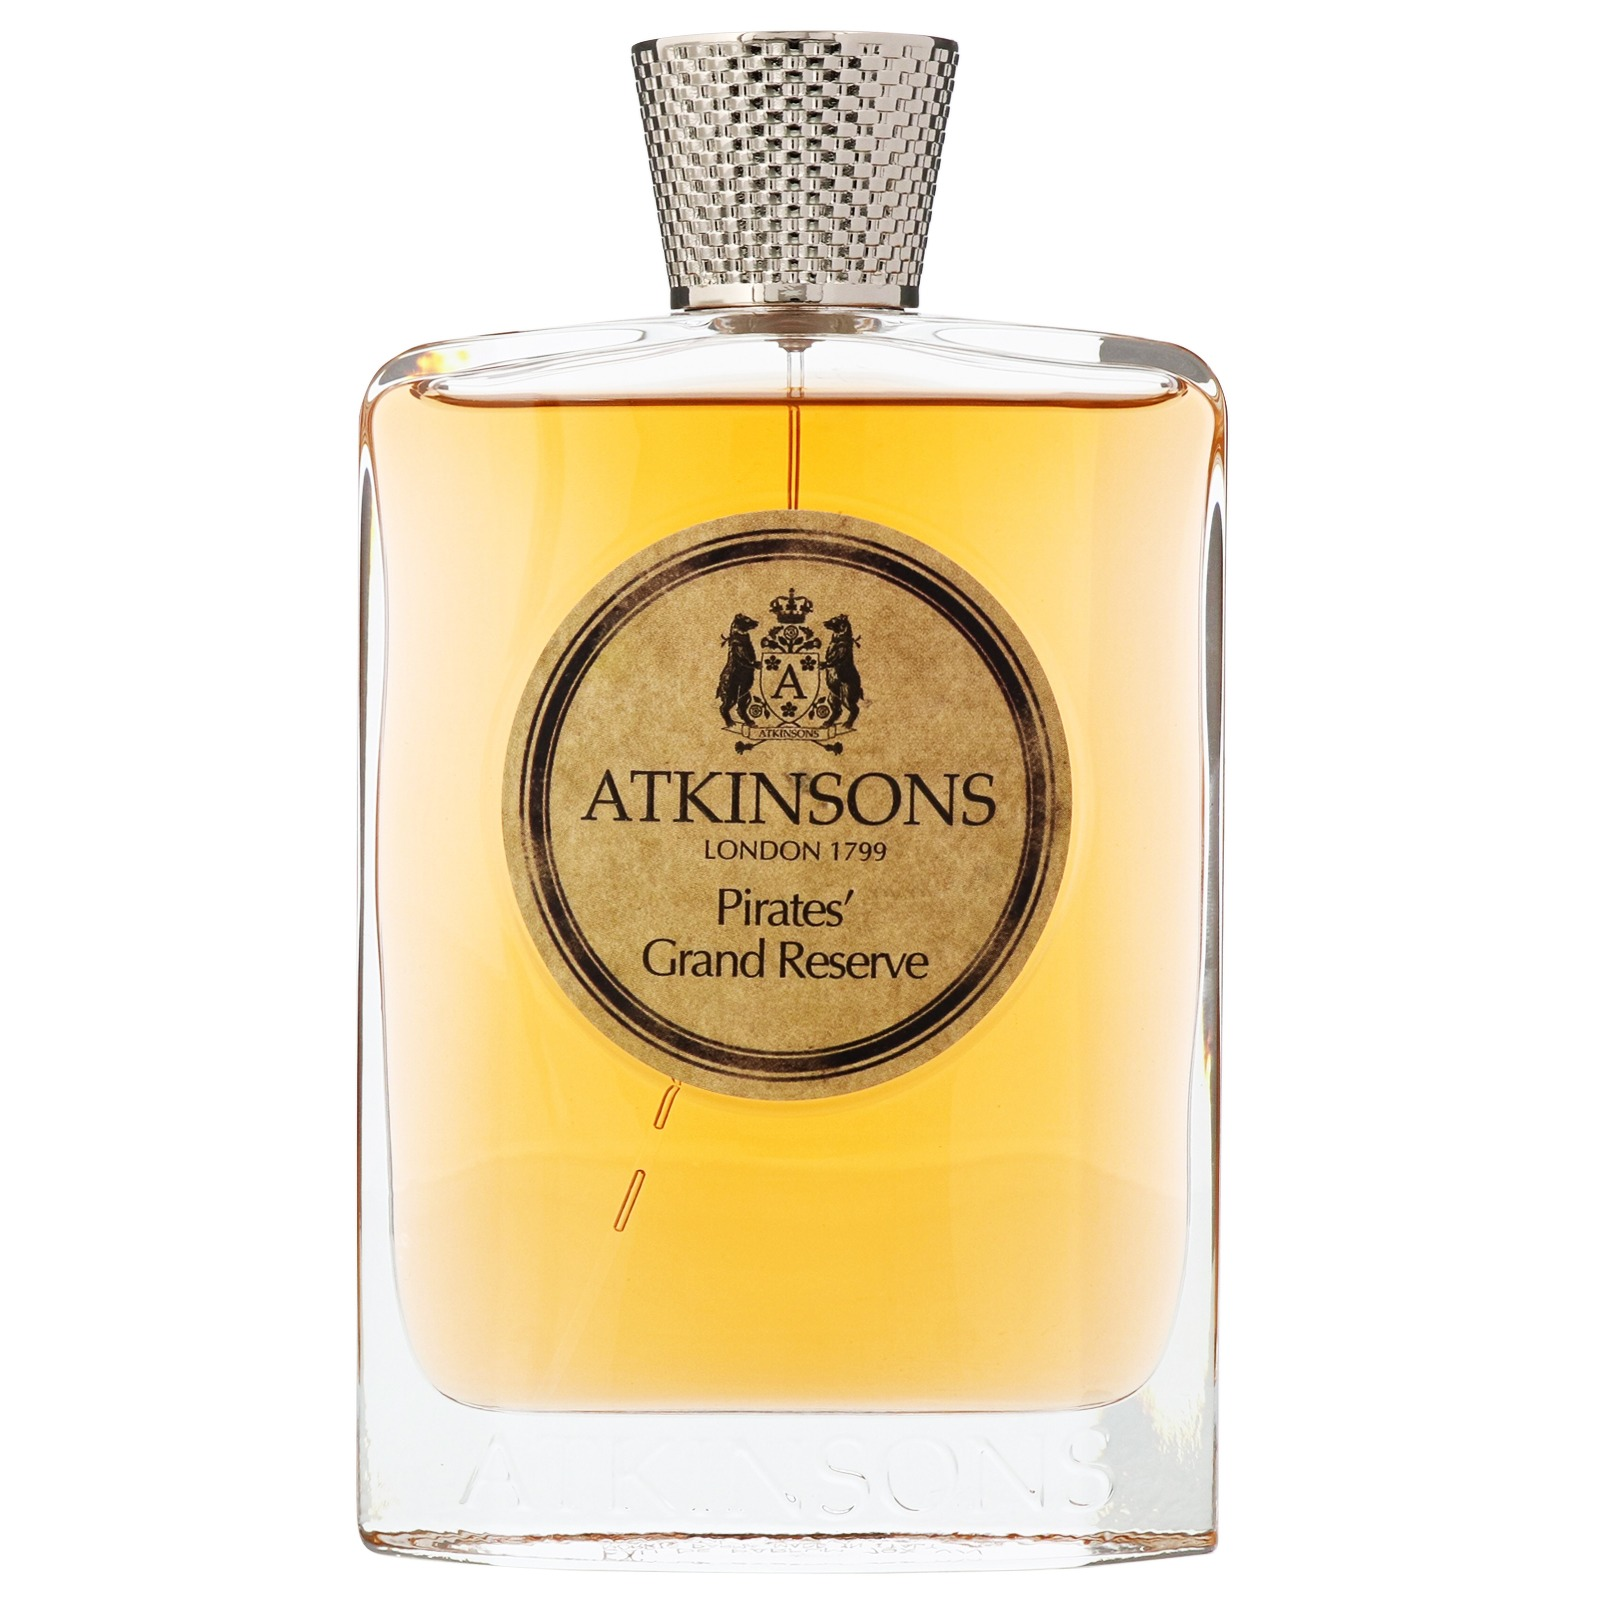 Atkinsons Pirates' Grand Reserve by Atkinsons